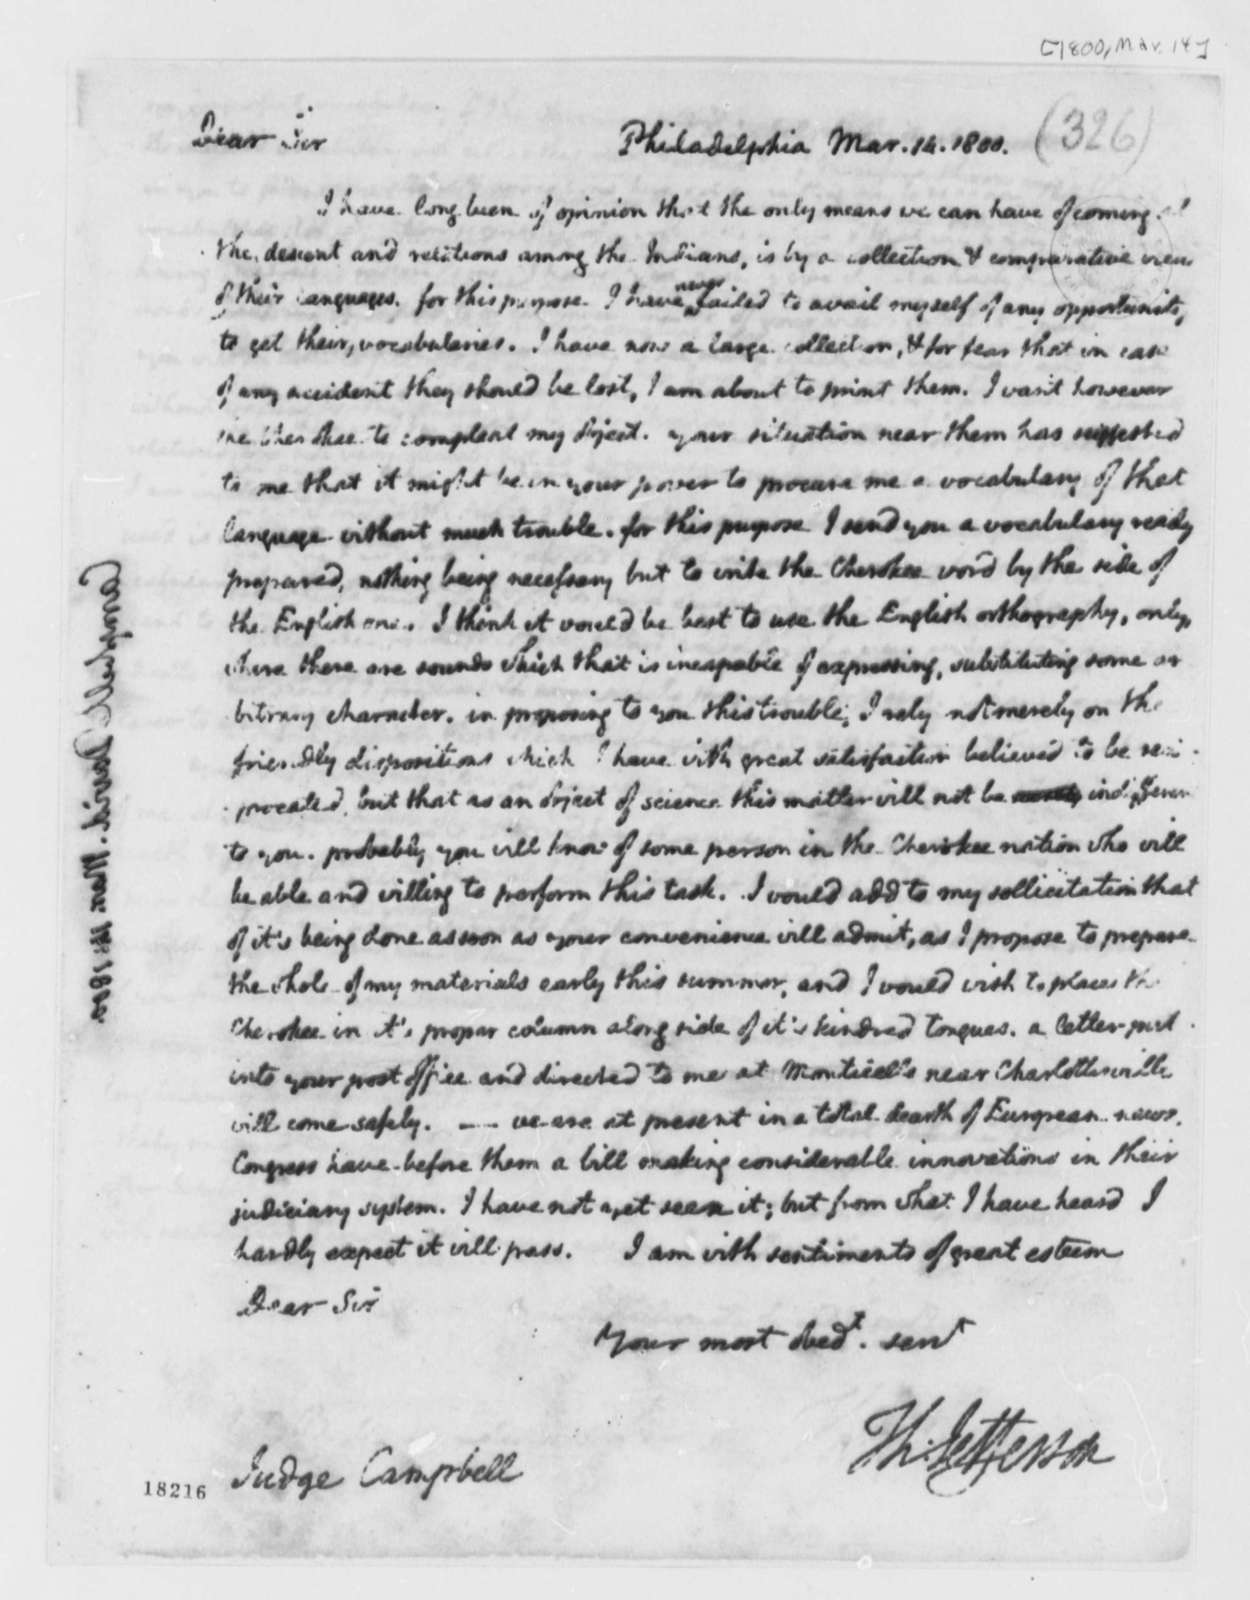 Thomas Jefferson to David Campbell, March 14, 1800